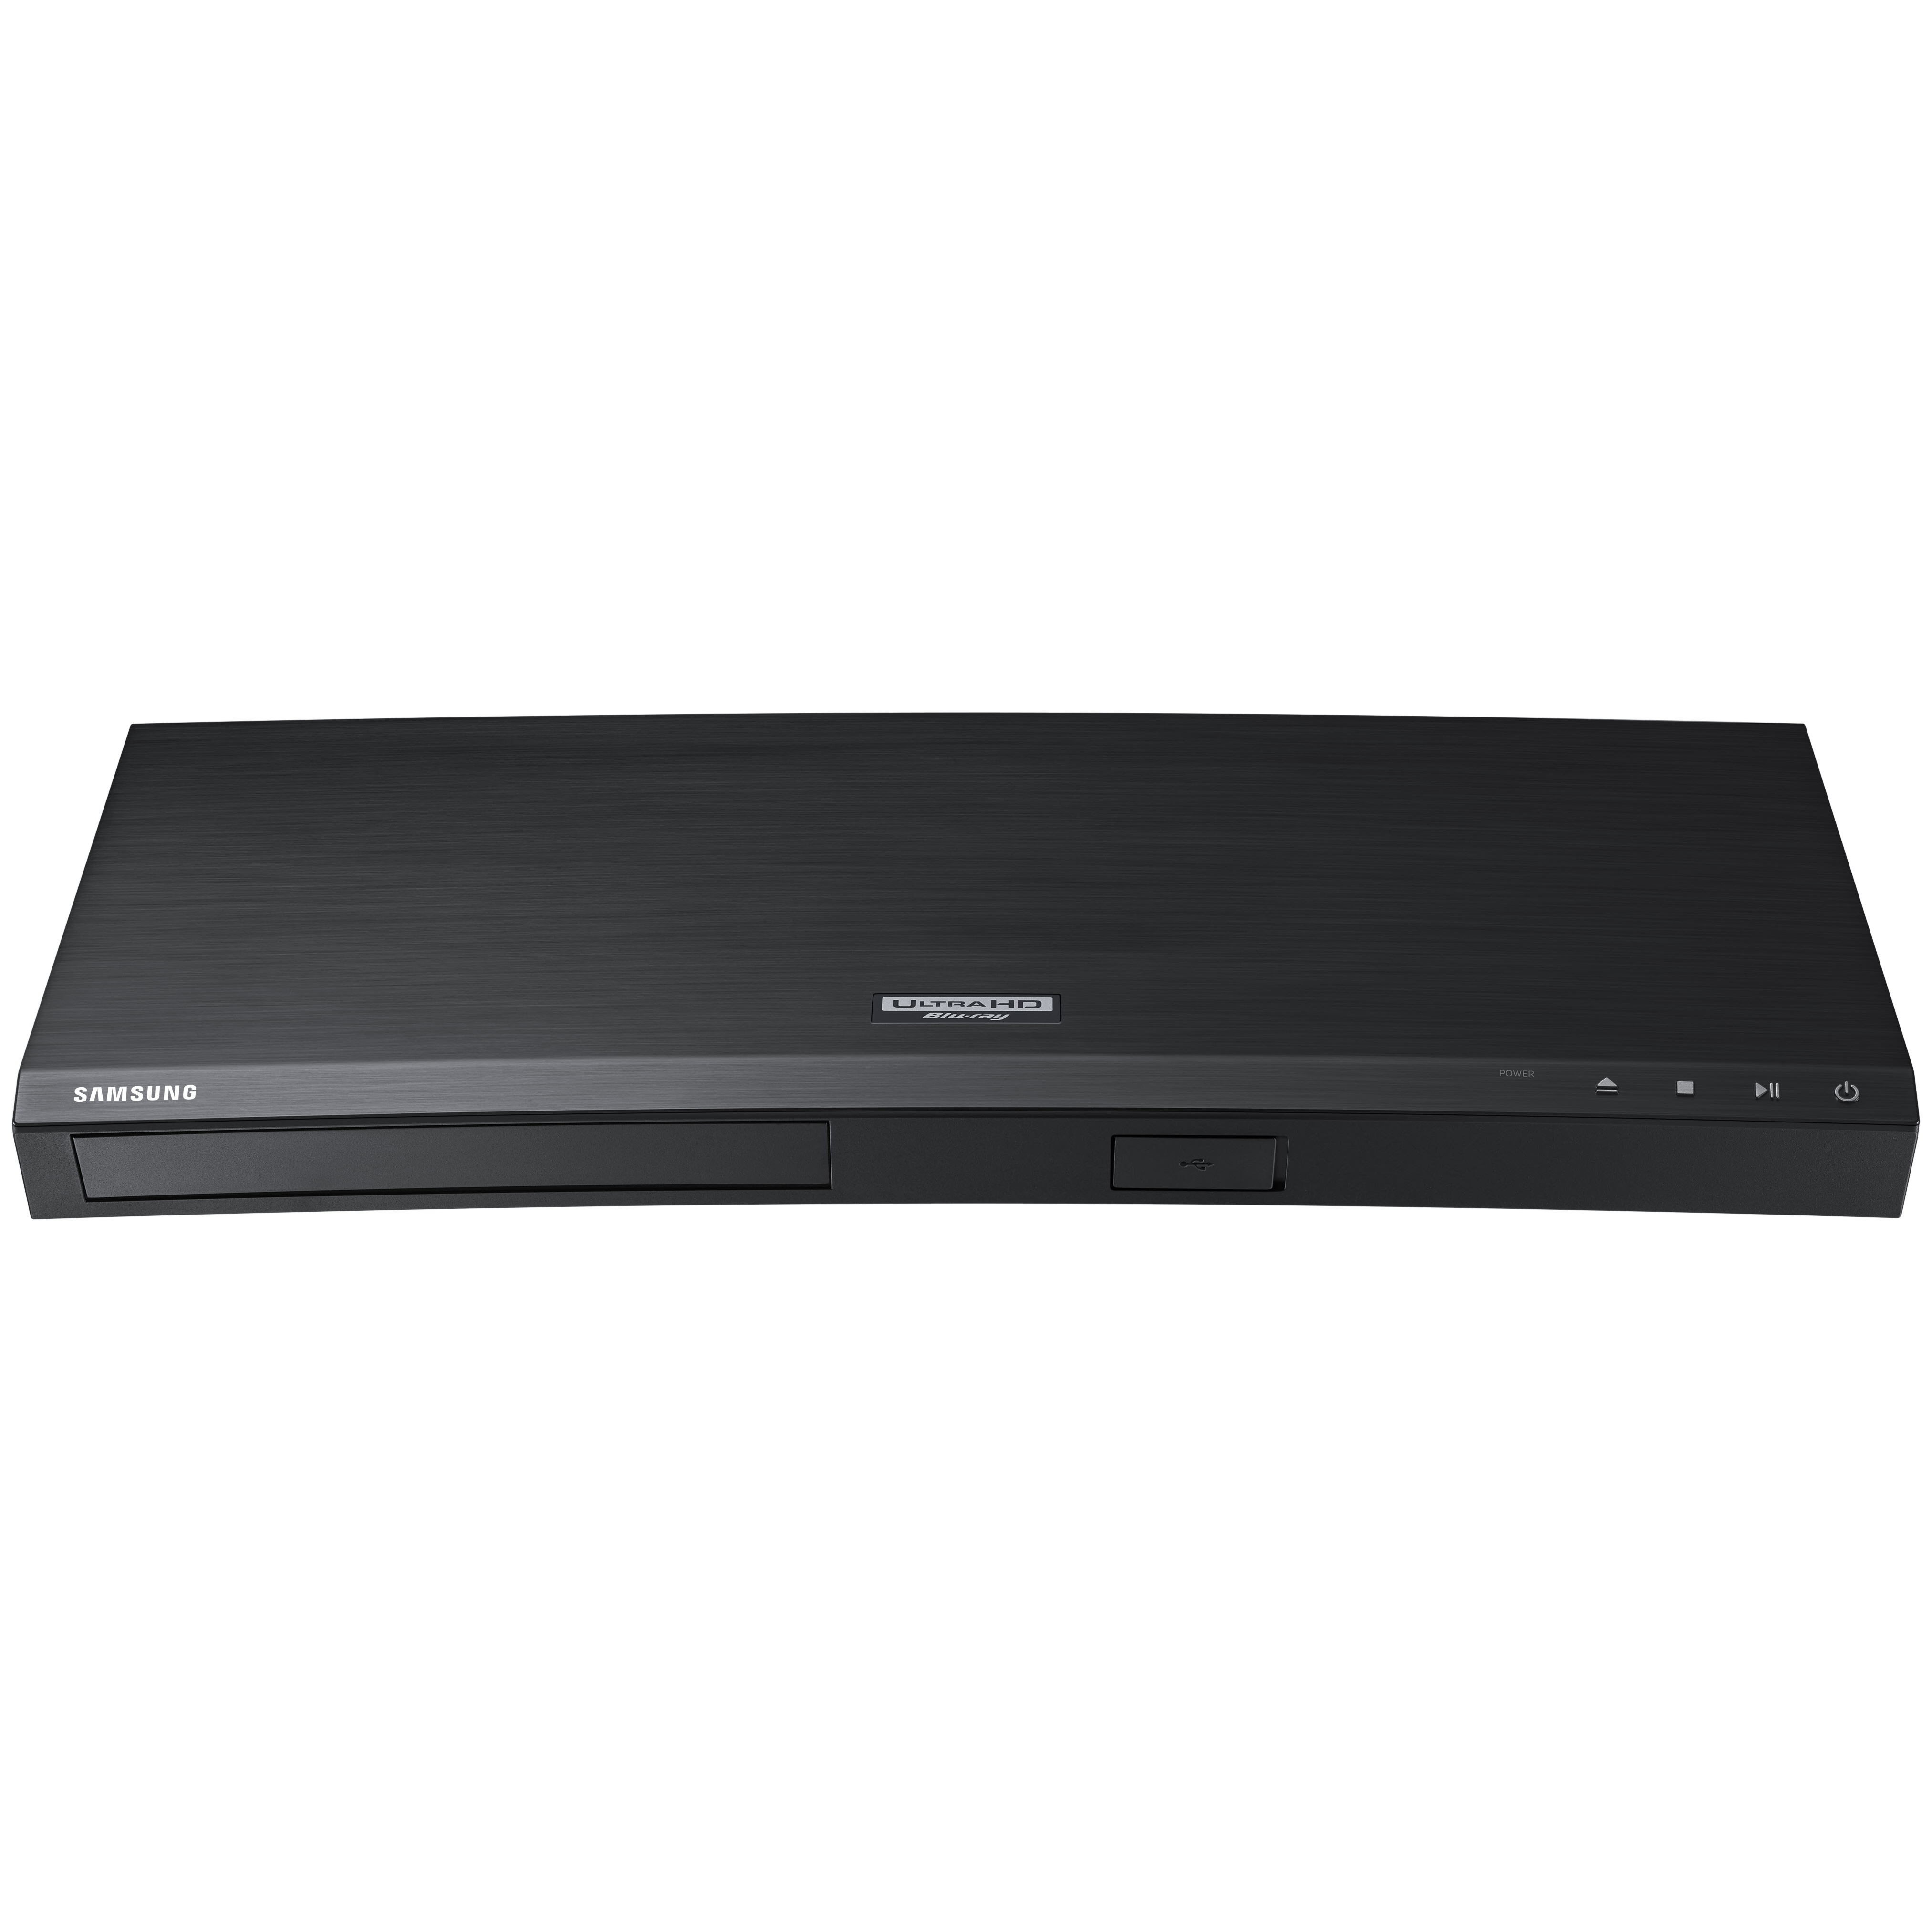 SAMSUNG 4K Ultra-HD Blu-ray & DVD Player with HDR and WiFi Streaming - UBD-M7500